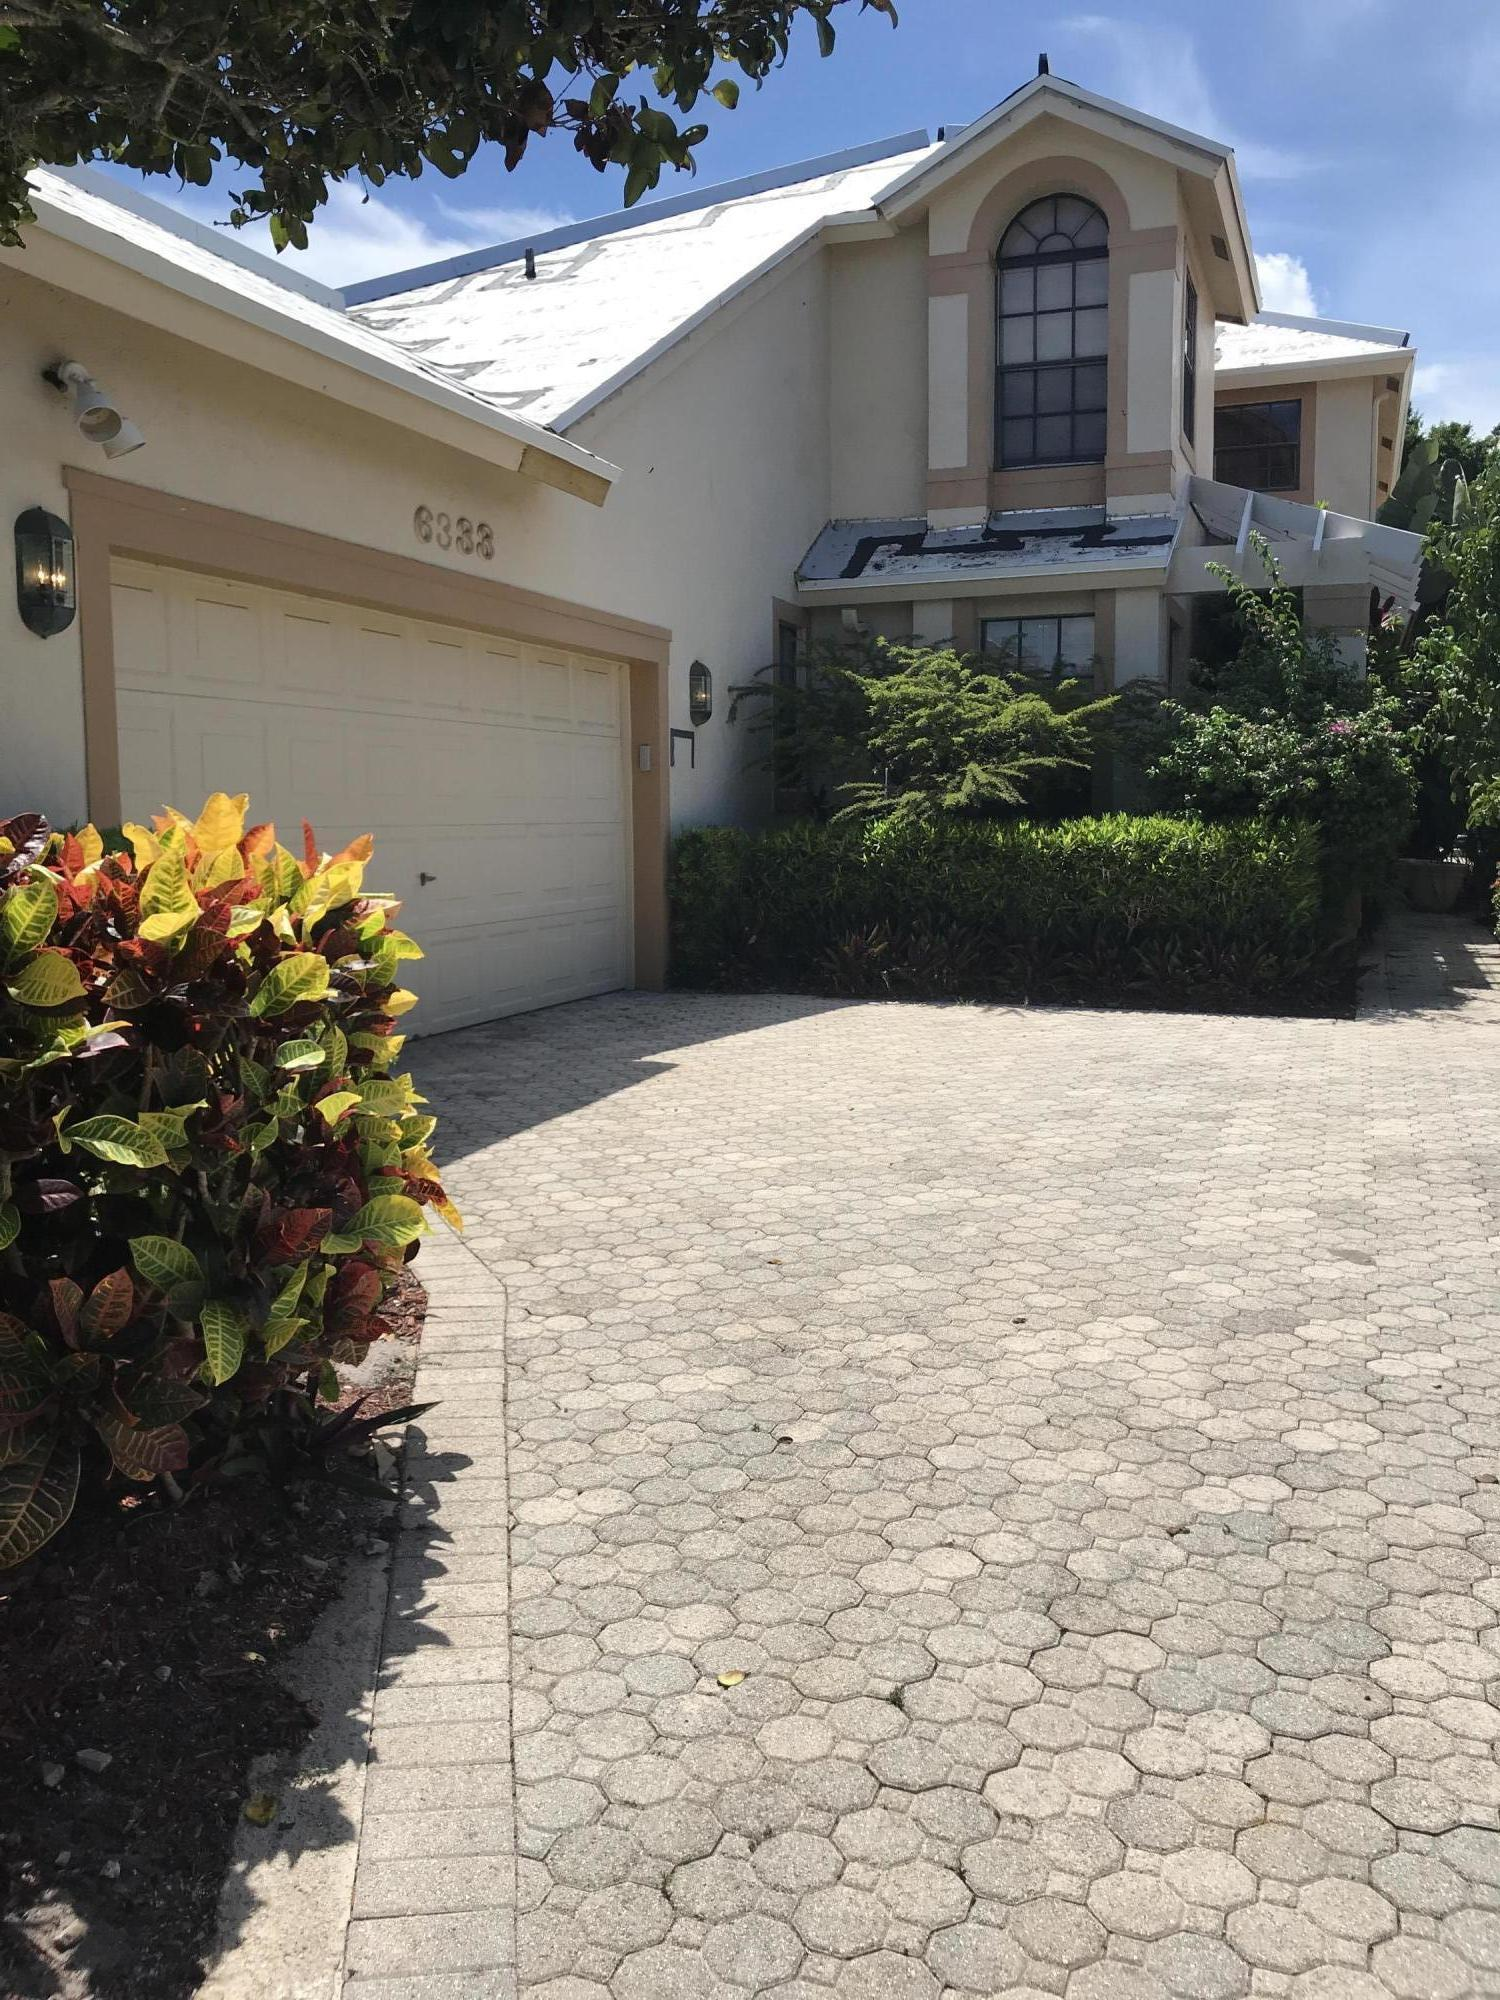 6333 Nw 25th Way Boca Raton, FL 33496